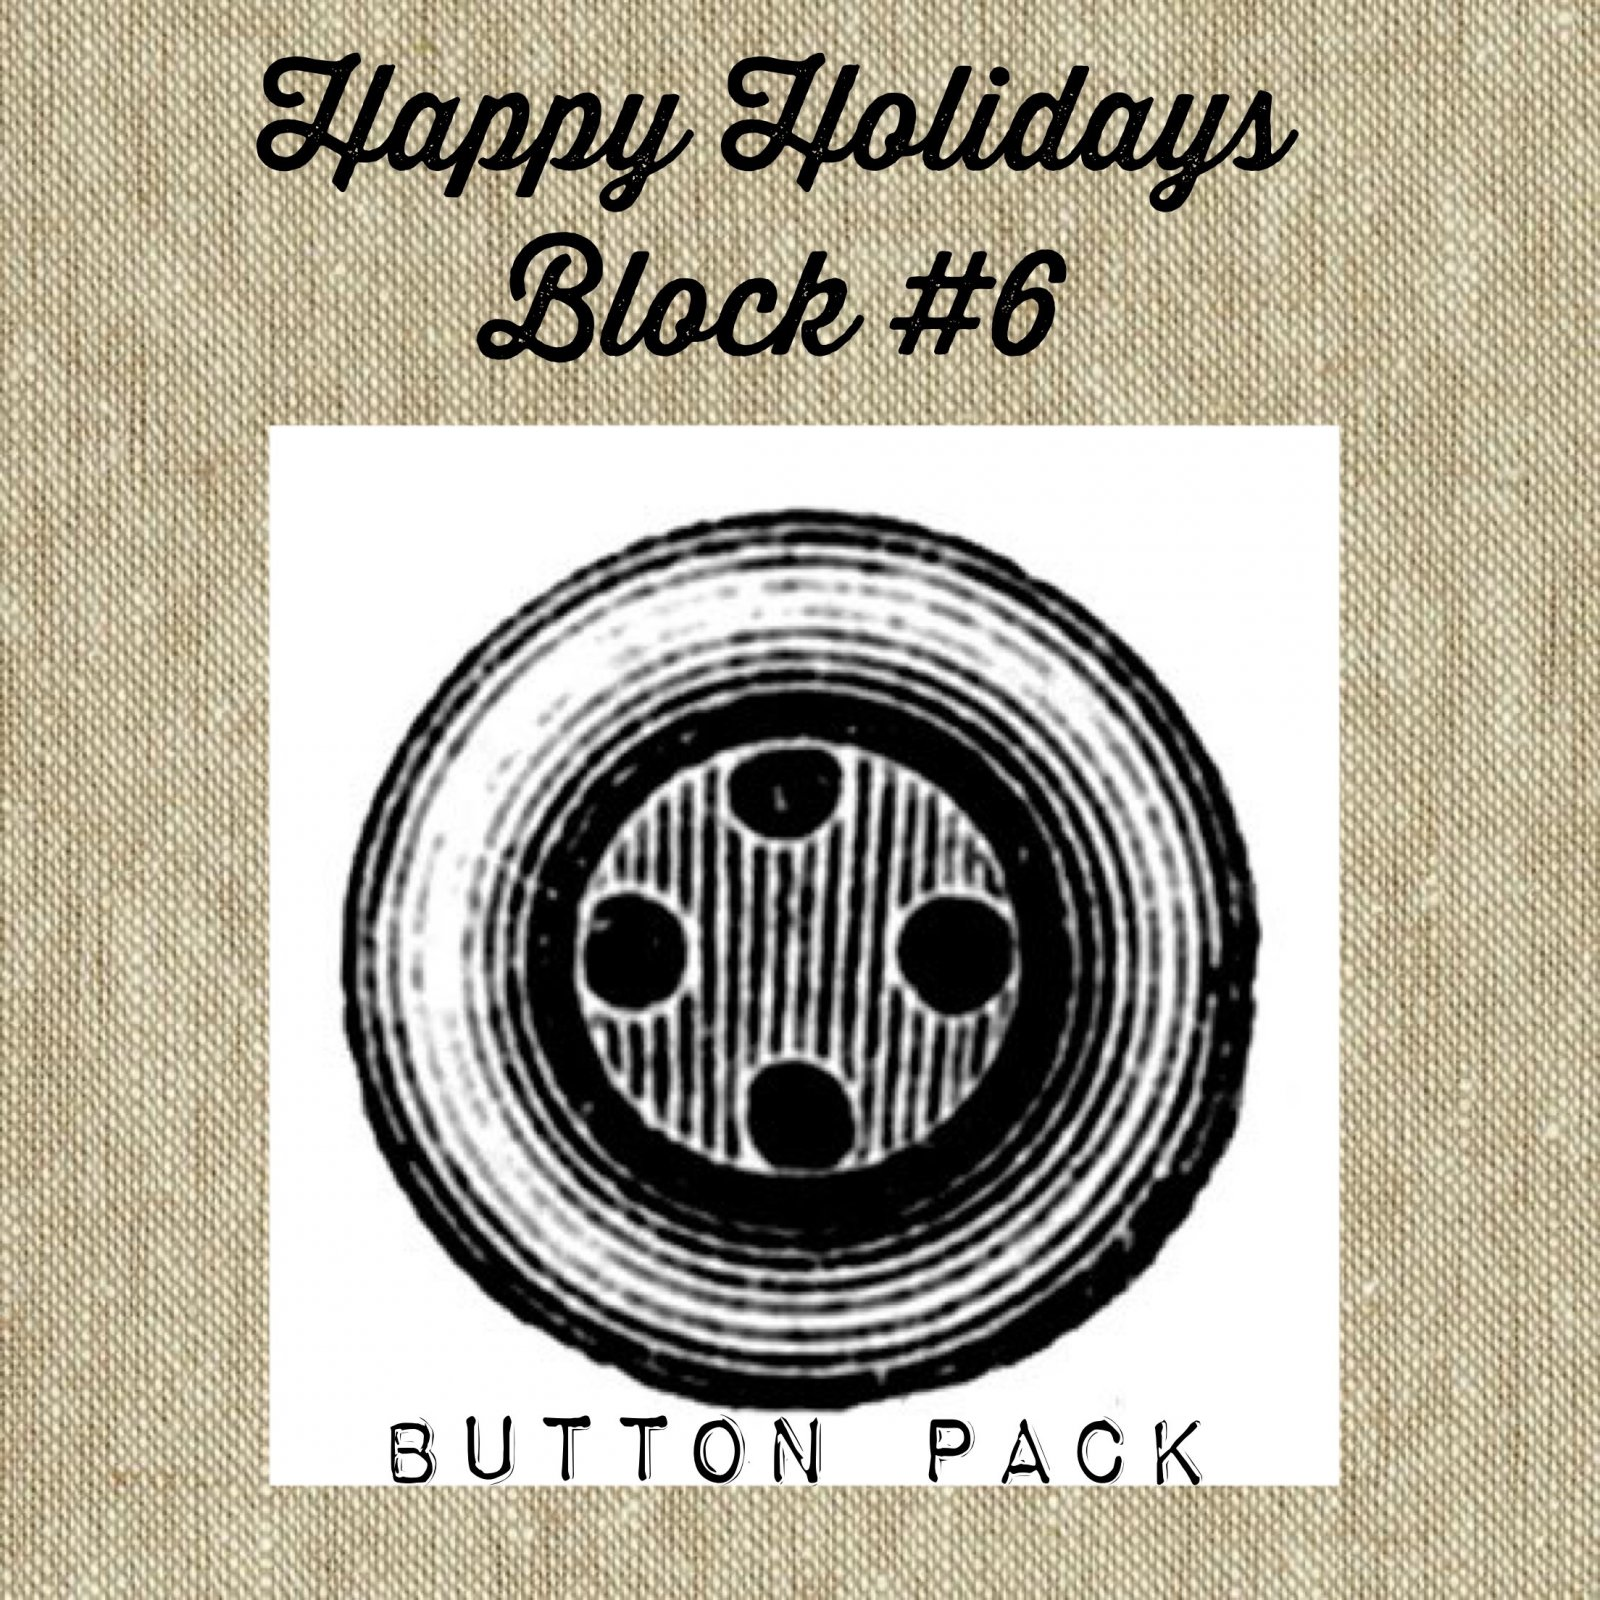 Happy Holidays Mystery Block #6 Letter A * Button Pack